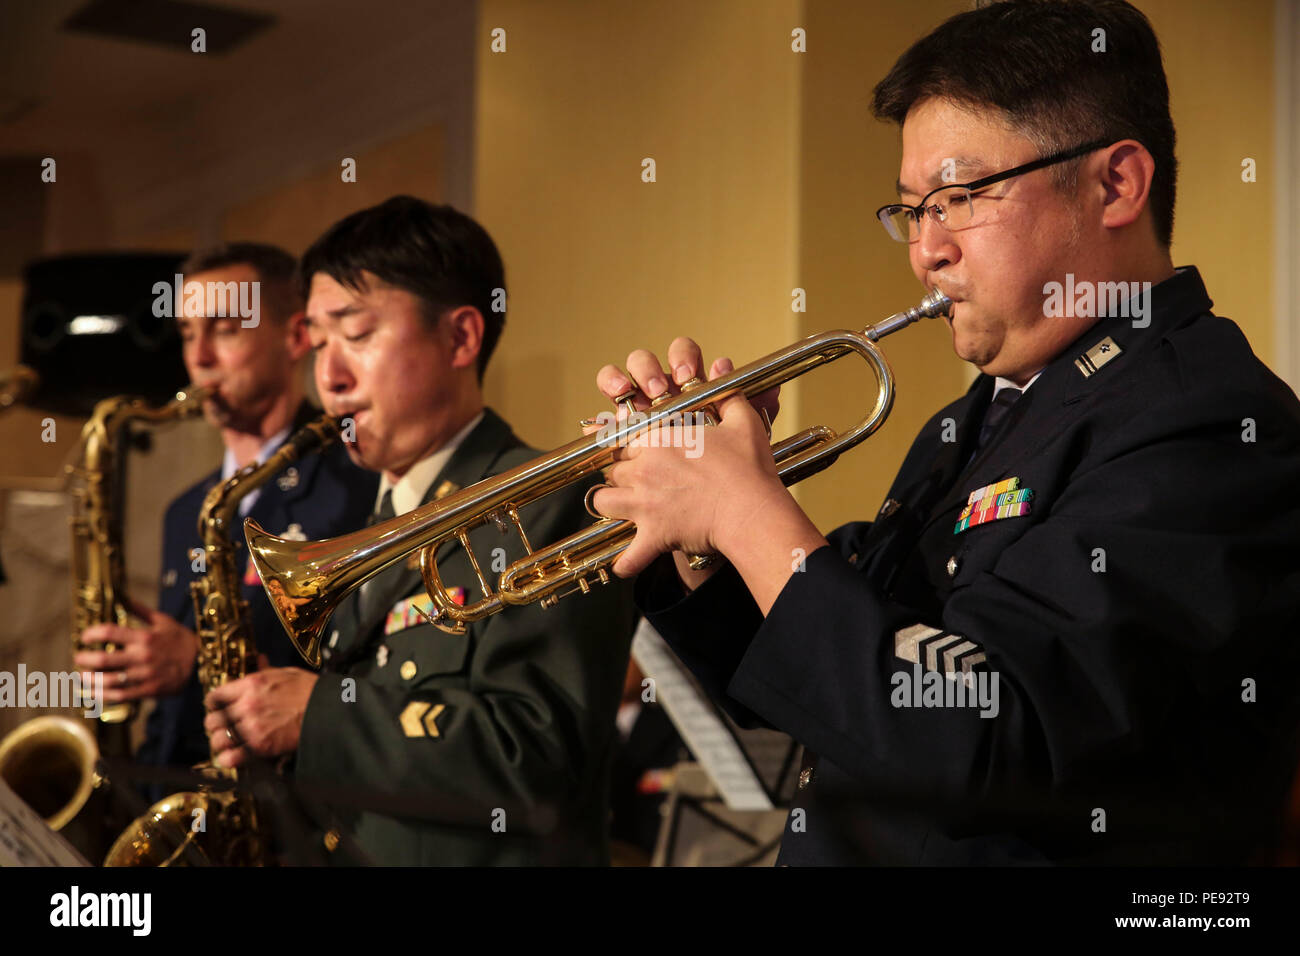 army japan band perform - HD 1300×956